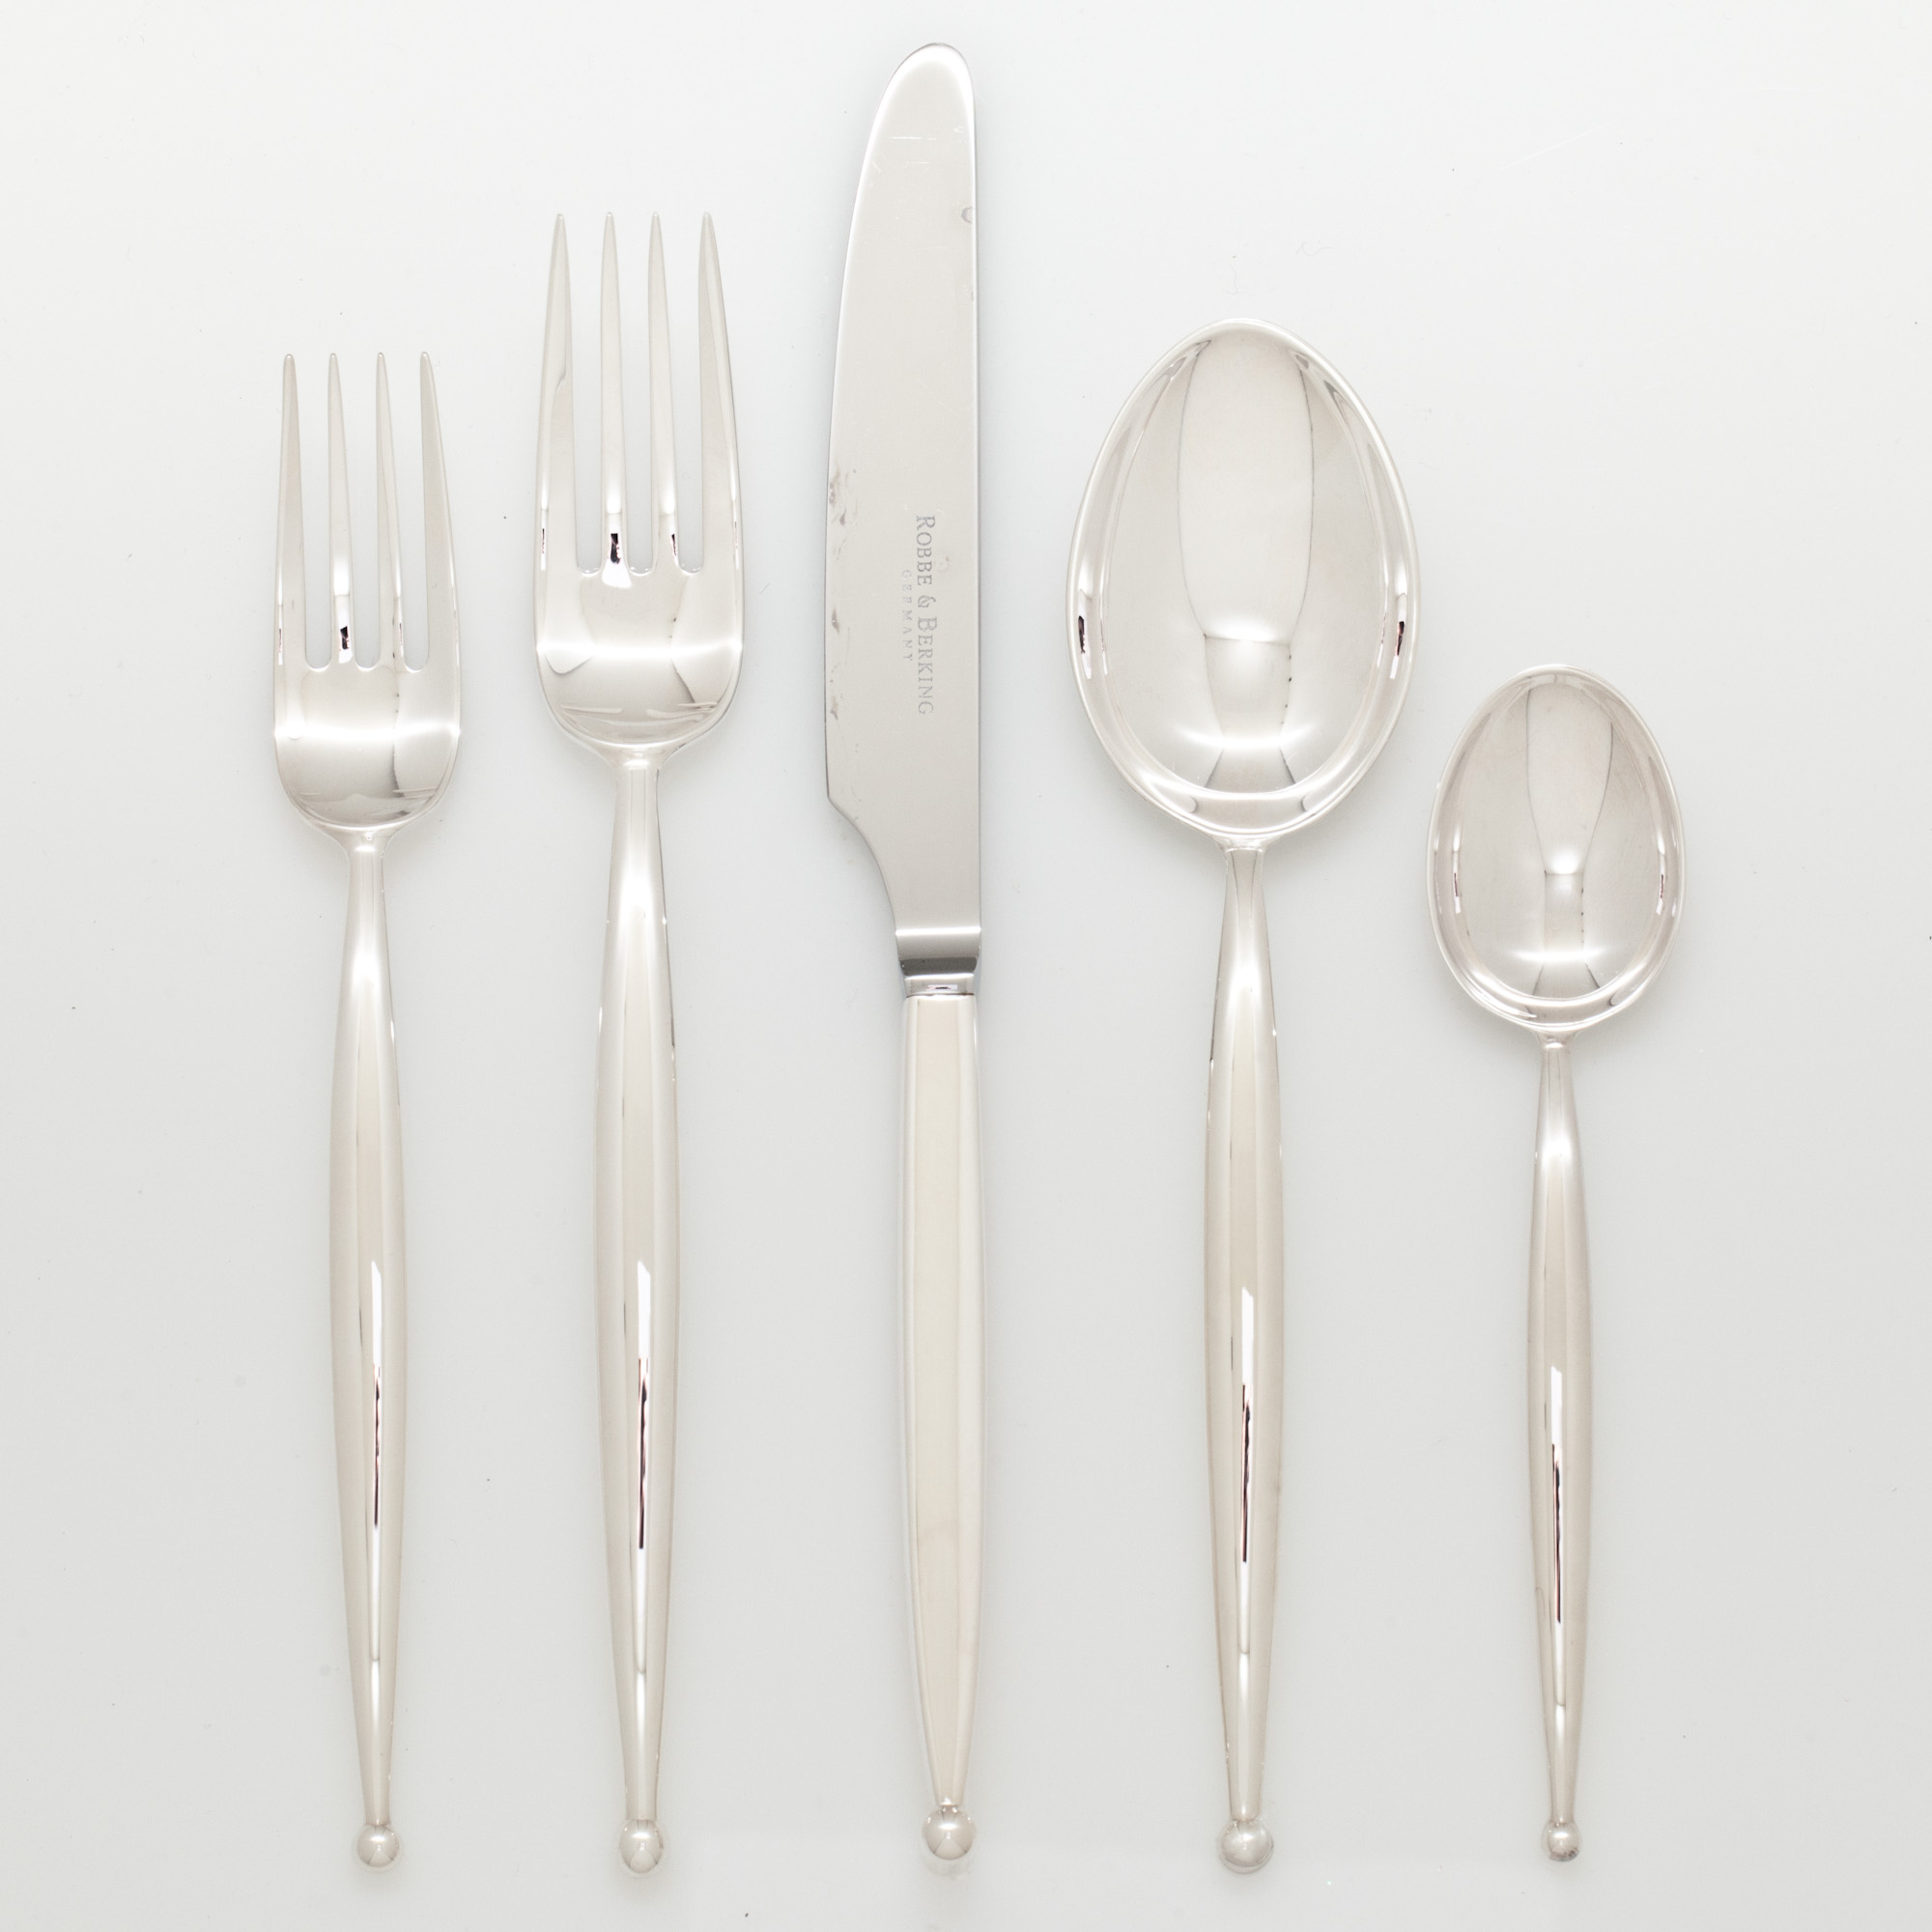 Robbe & Berking Gio Sterling Silver Flatware